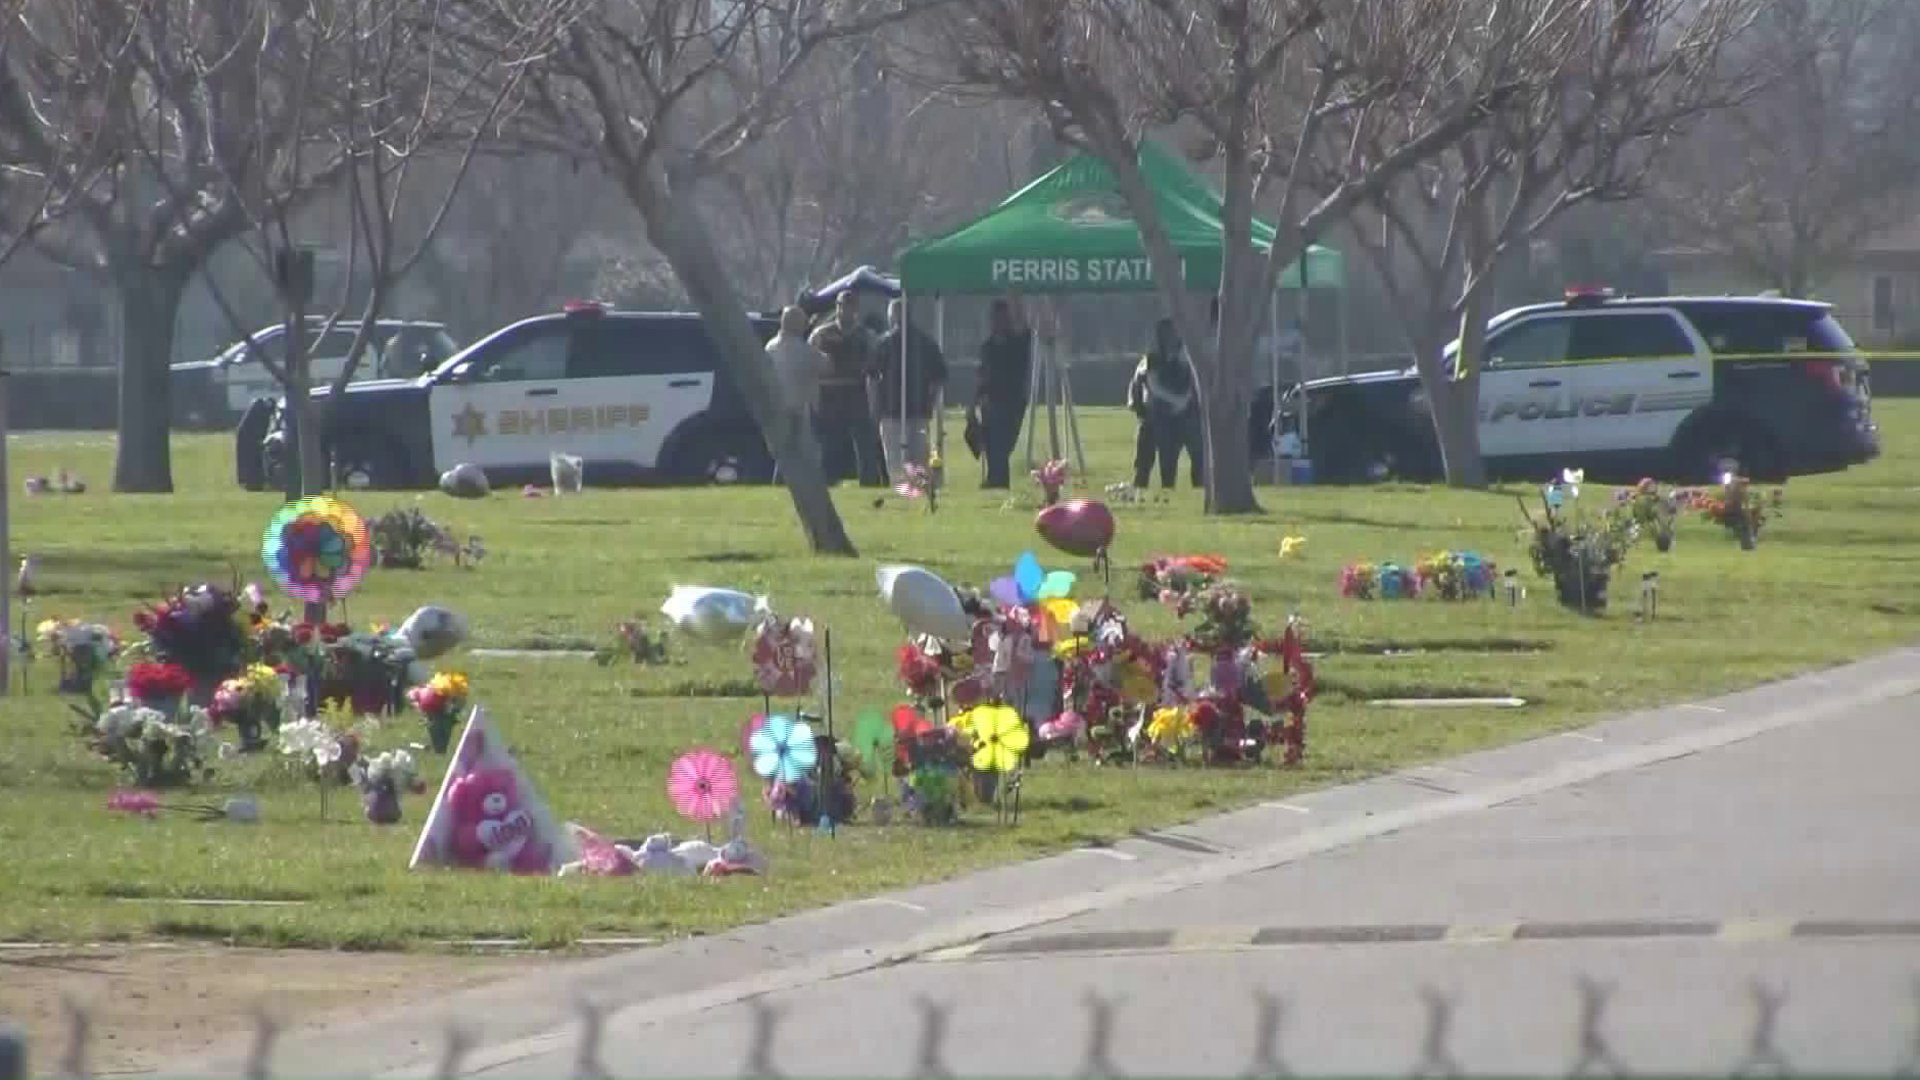 A triple homicide investigation was underway in Perris after the bodies of three men were discovered near a grave site at a cemetery on Feb. 17, 2020. (Credit: KTLA)